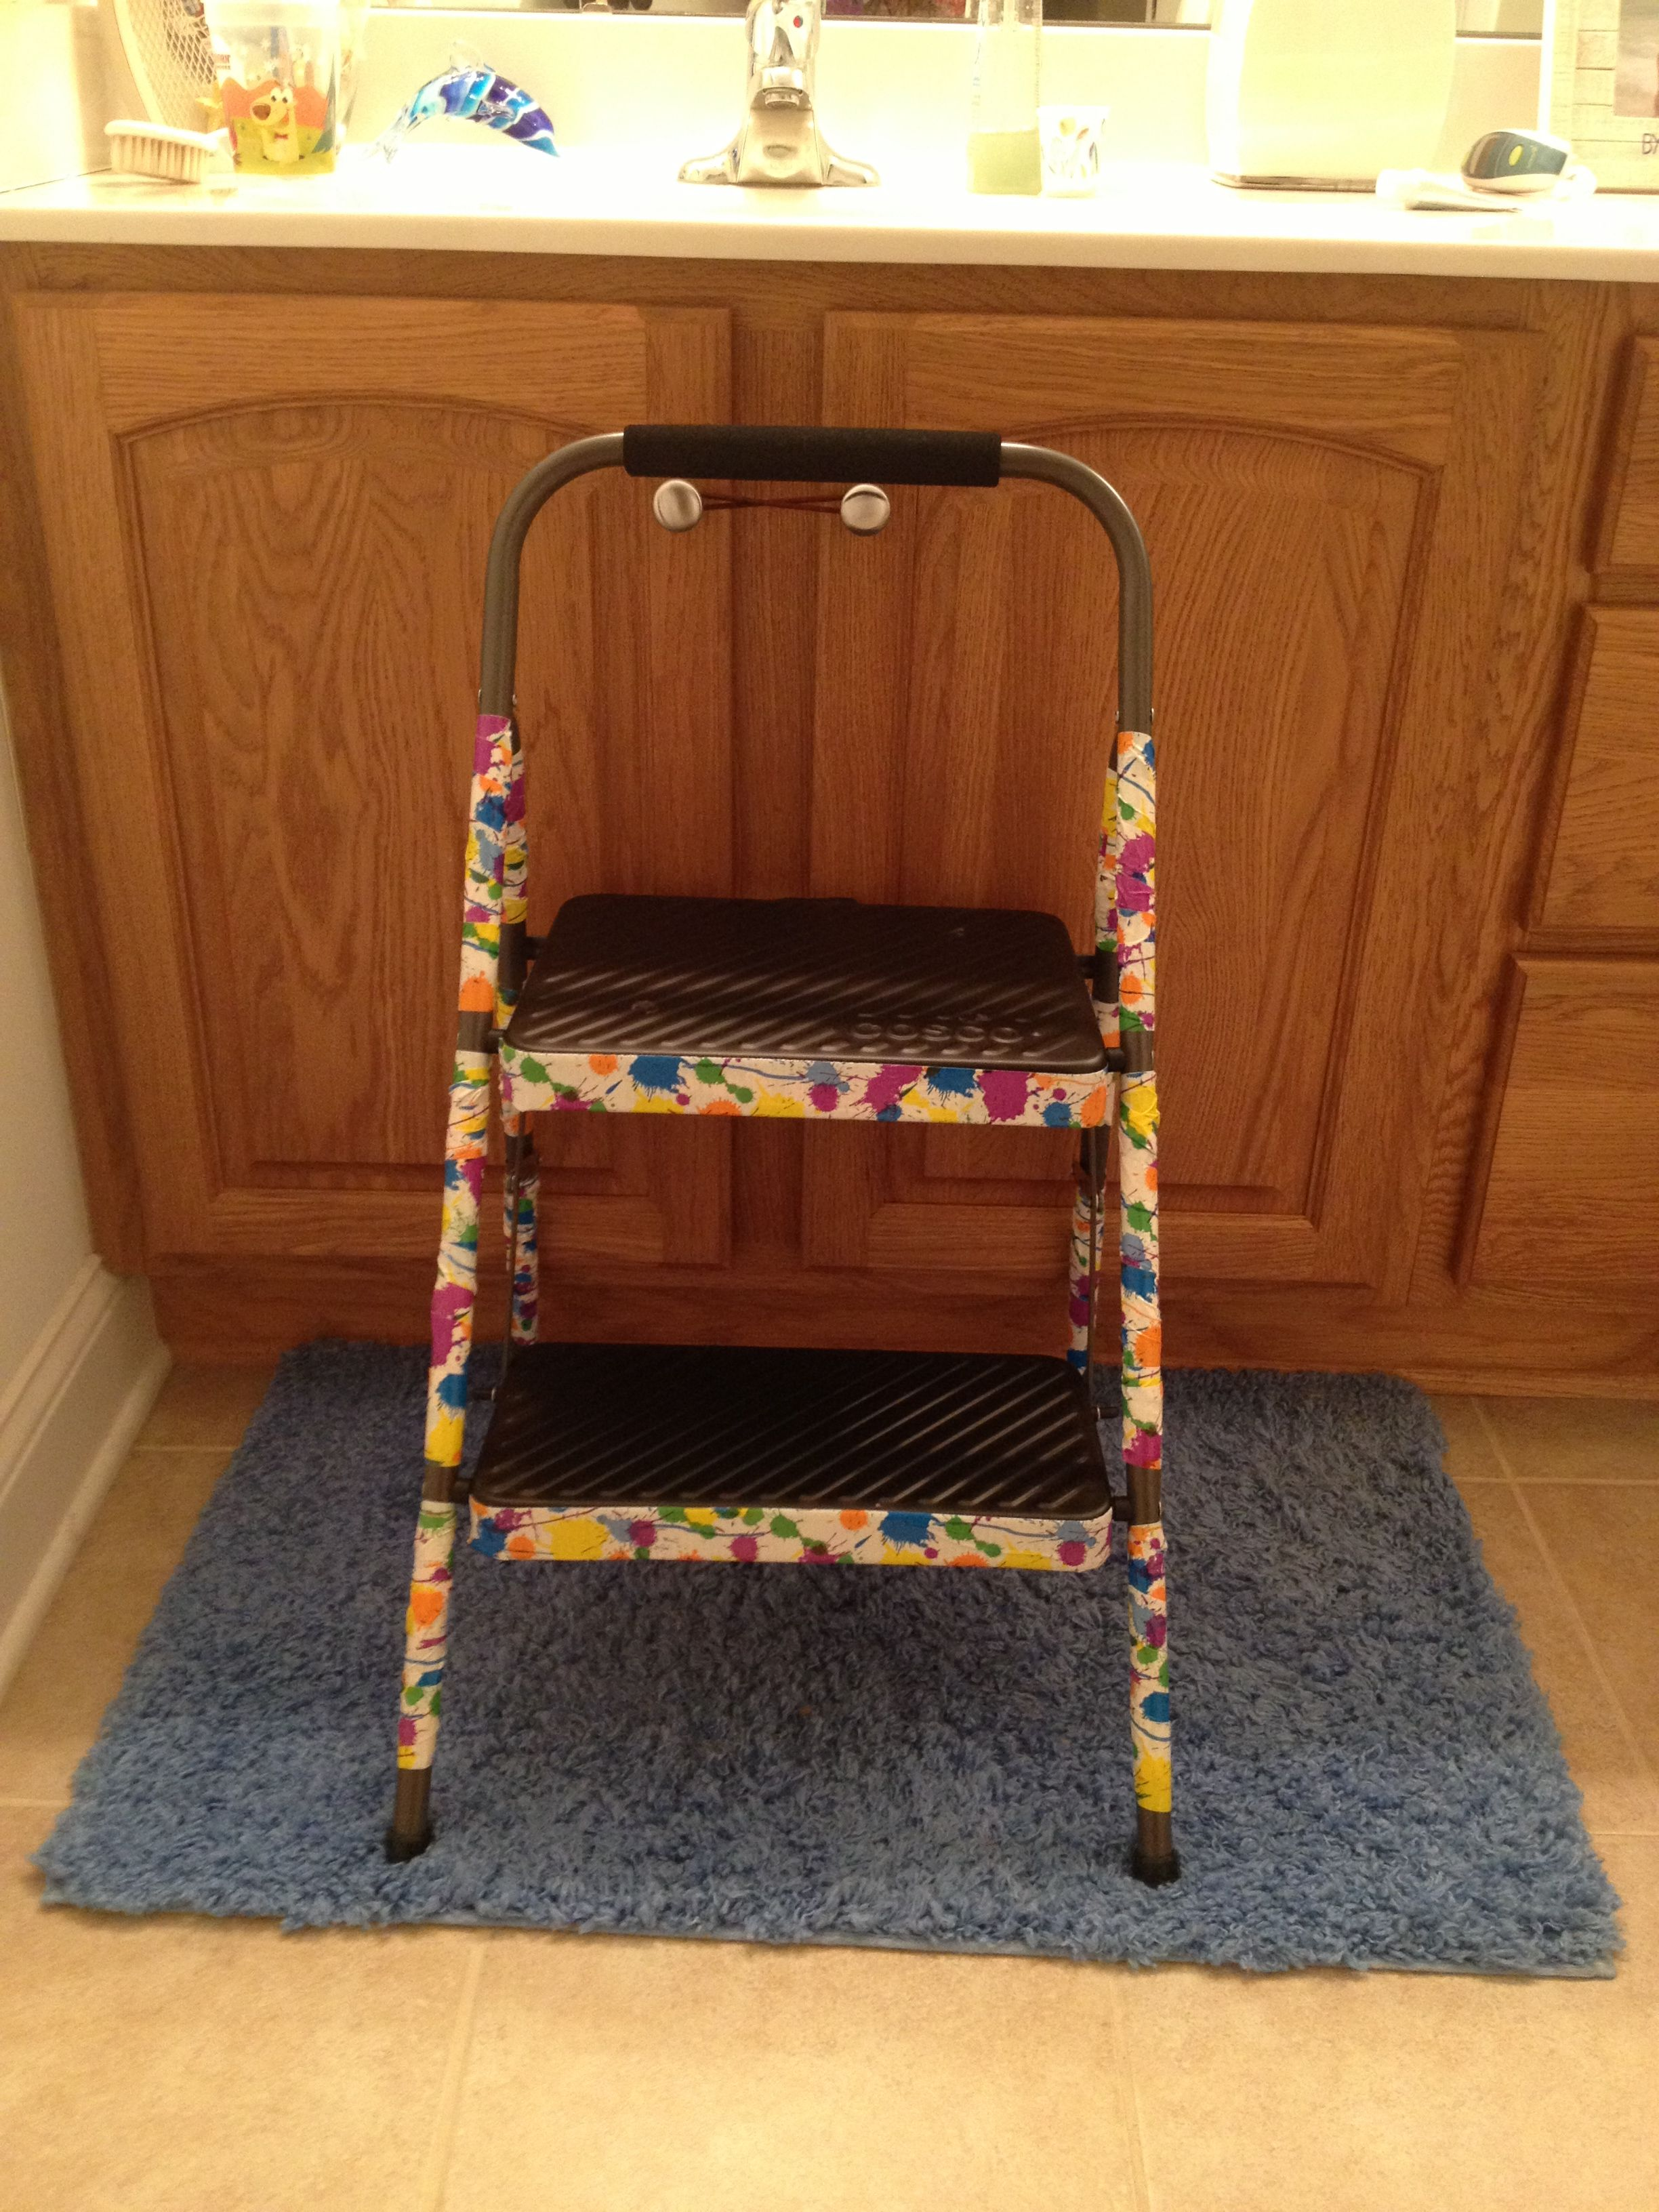 Make an ordinary hardware store step stool into a cute